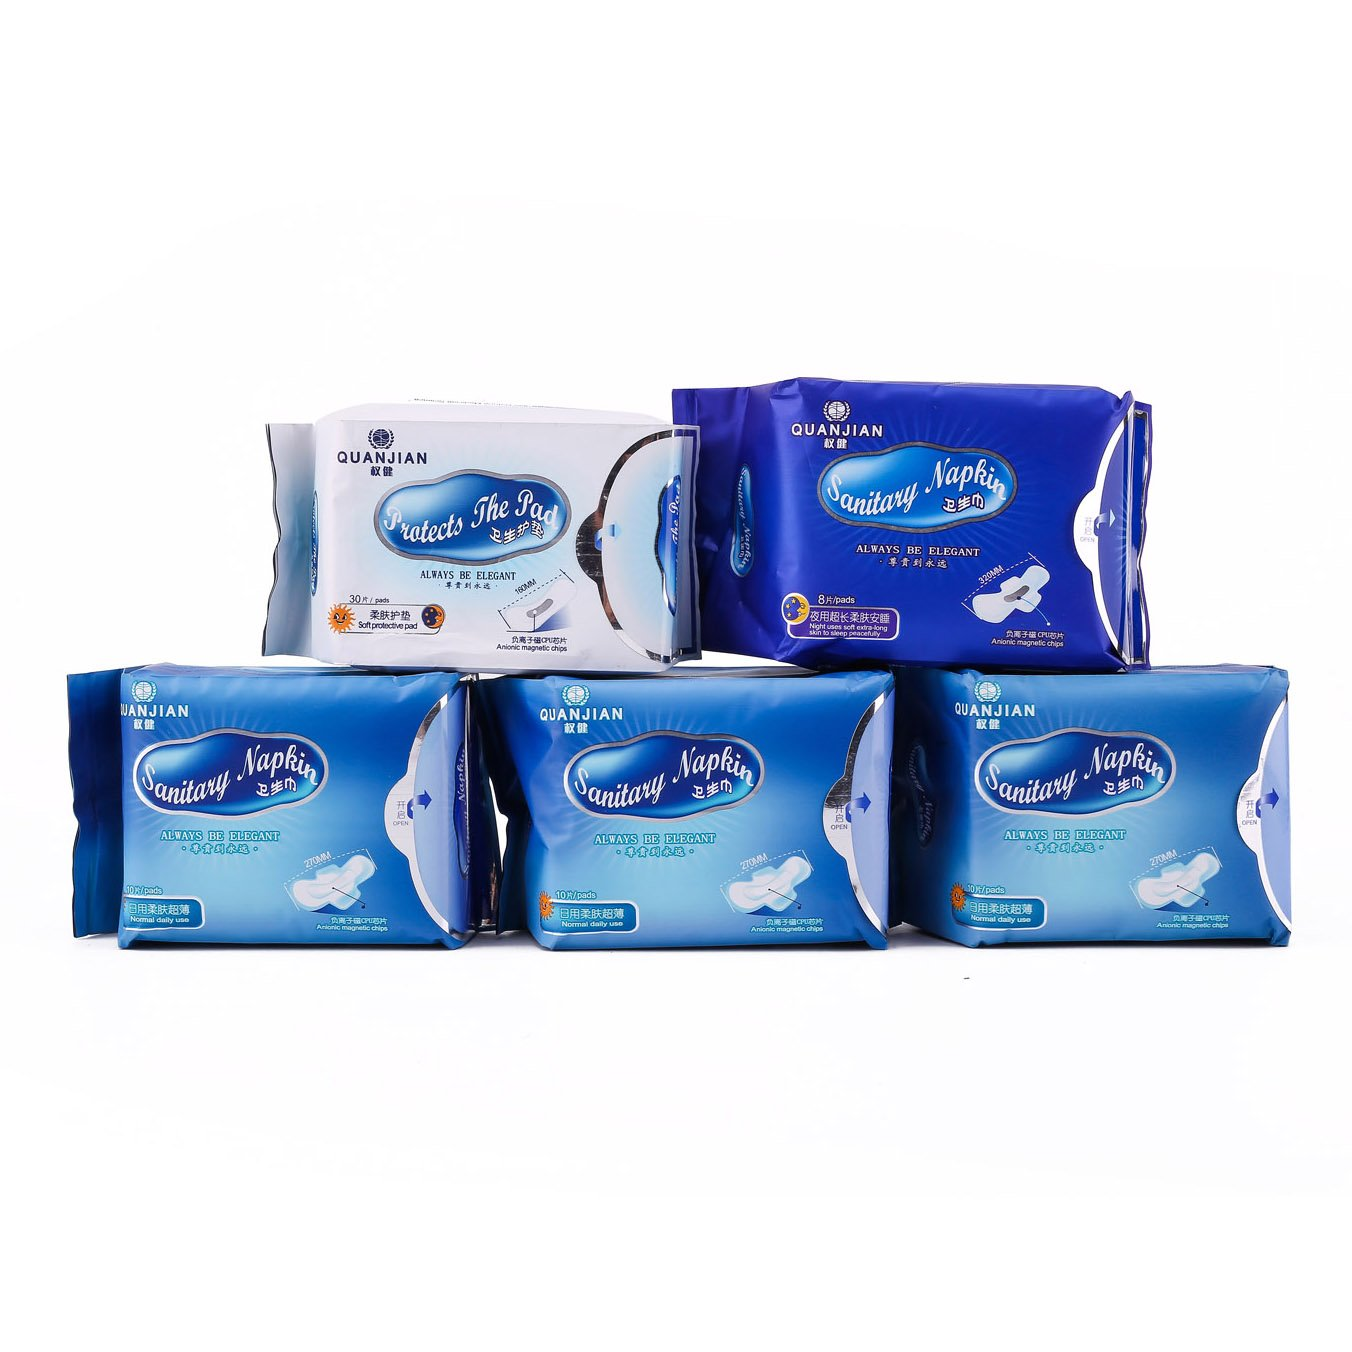 FDA APPROVED QUANJIAN Sanitary Napkins Sets Pads for Women Health Natural 5 Pack Protective Ladies Teens Daily and Night